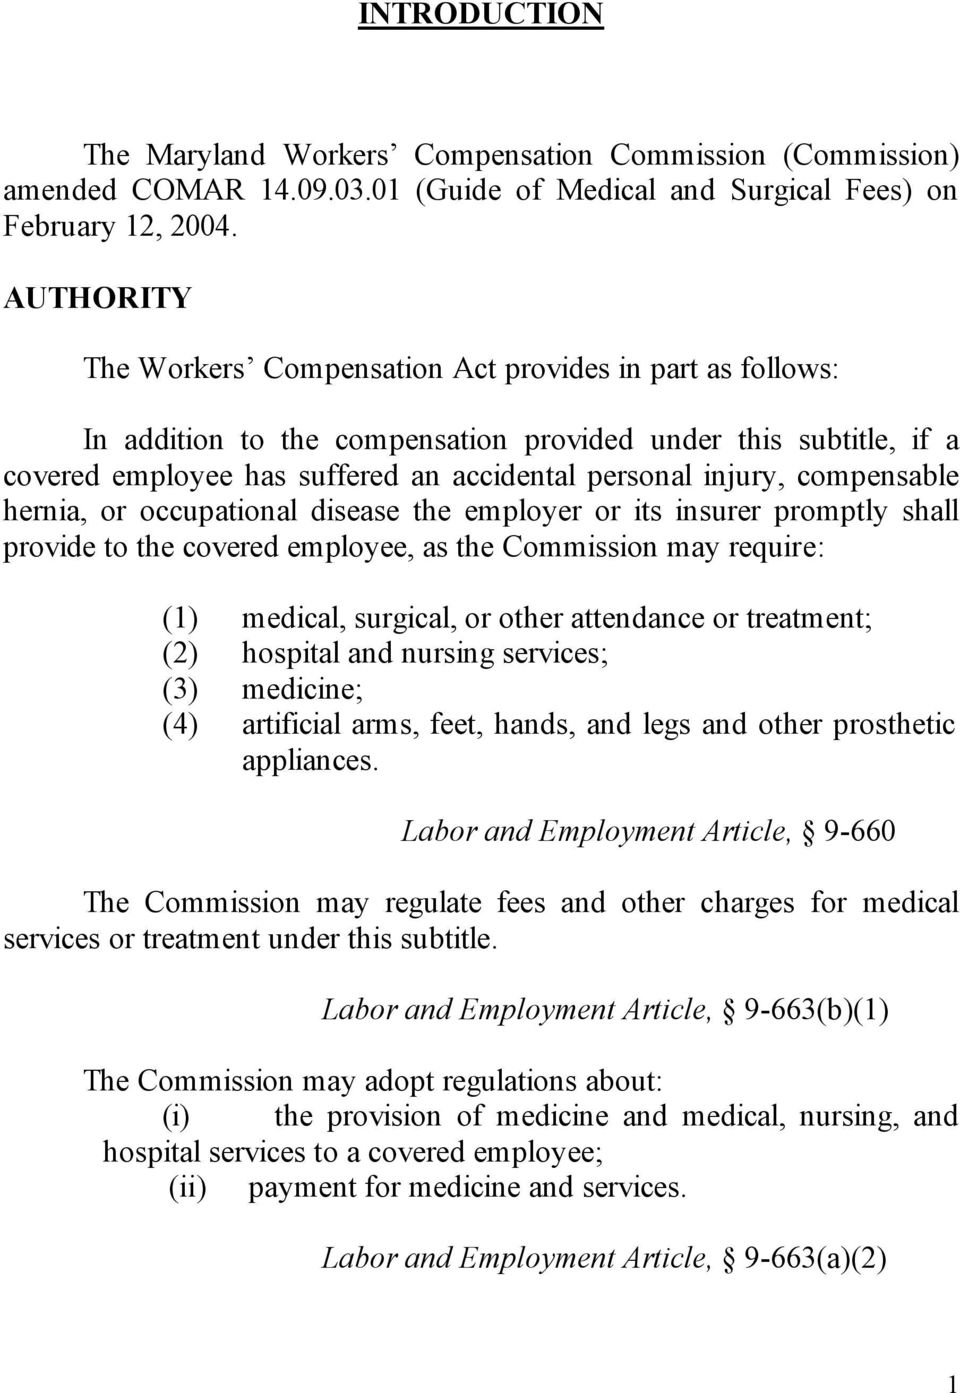 compensable hernia, or occupational disease the employer or its insurer promptly shall provide to the covered employee, as the Commission may require: (1) medical, surgical, or other attendance or